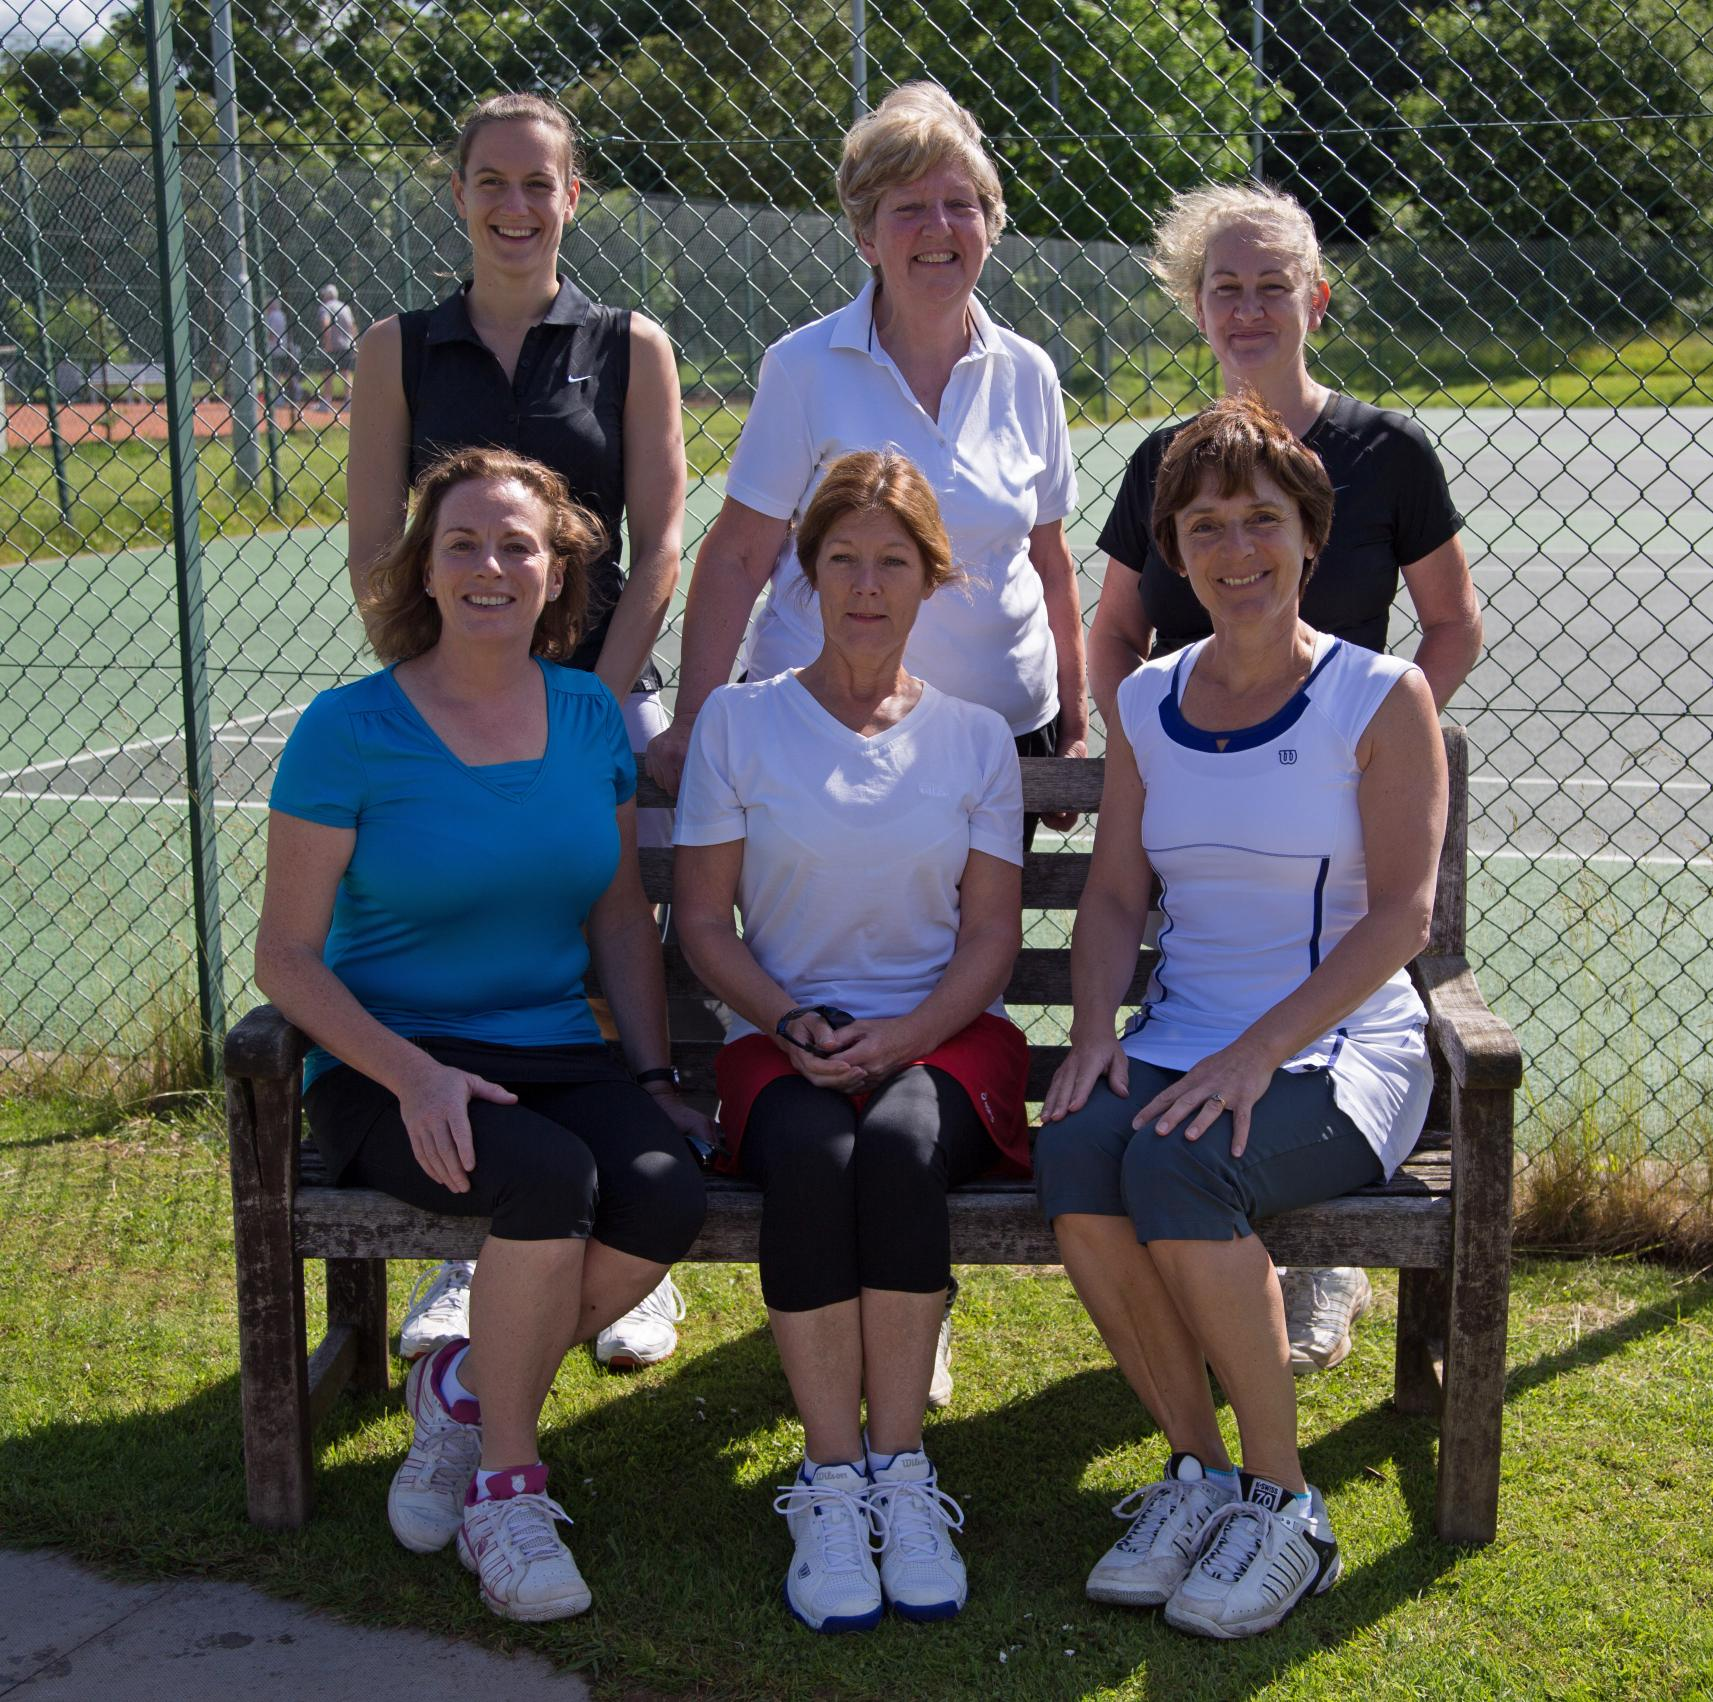 Bromsgrove Ladies C: Back row: Lisa Rushton, Sheila Richardson and Lorraine Russel. Front row: Sue Murray, Sue Forrest and Anne Simper.